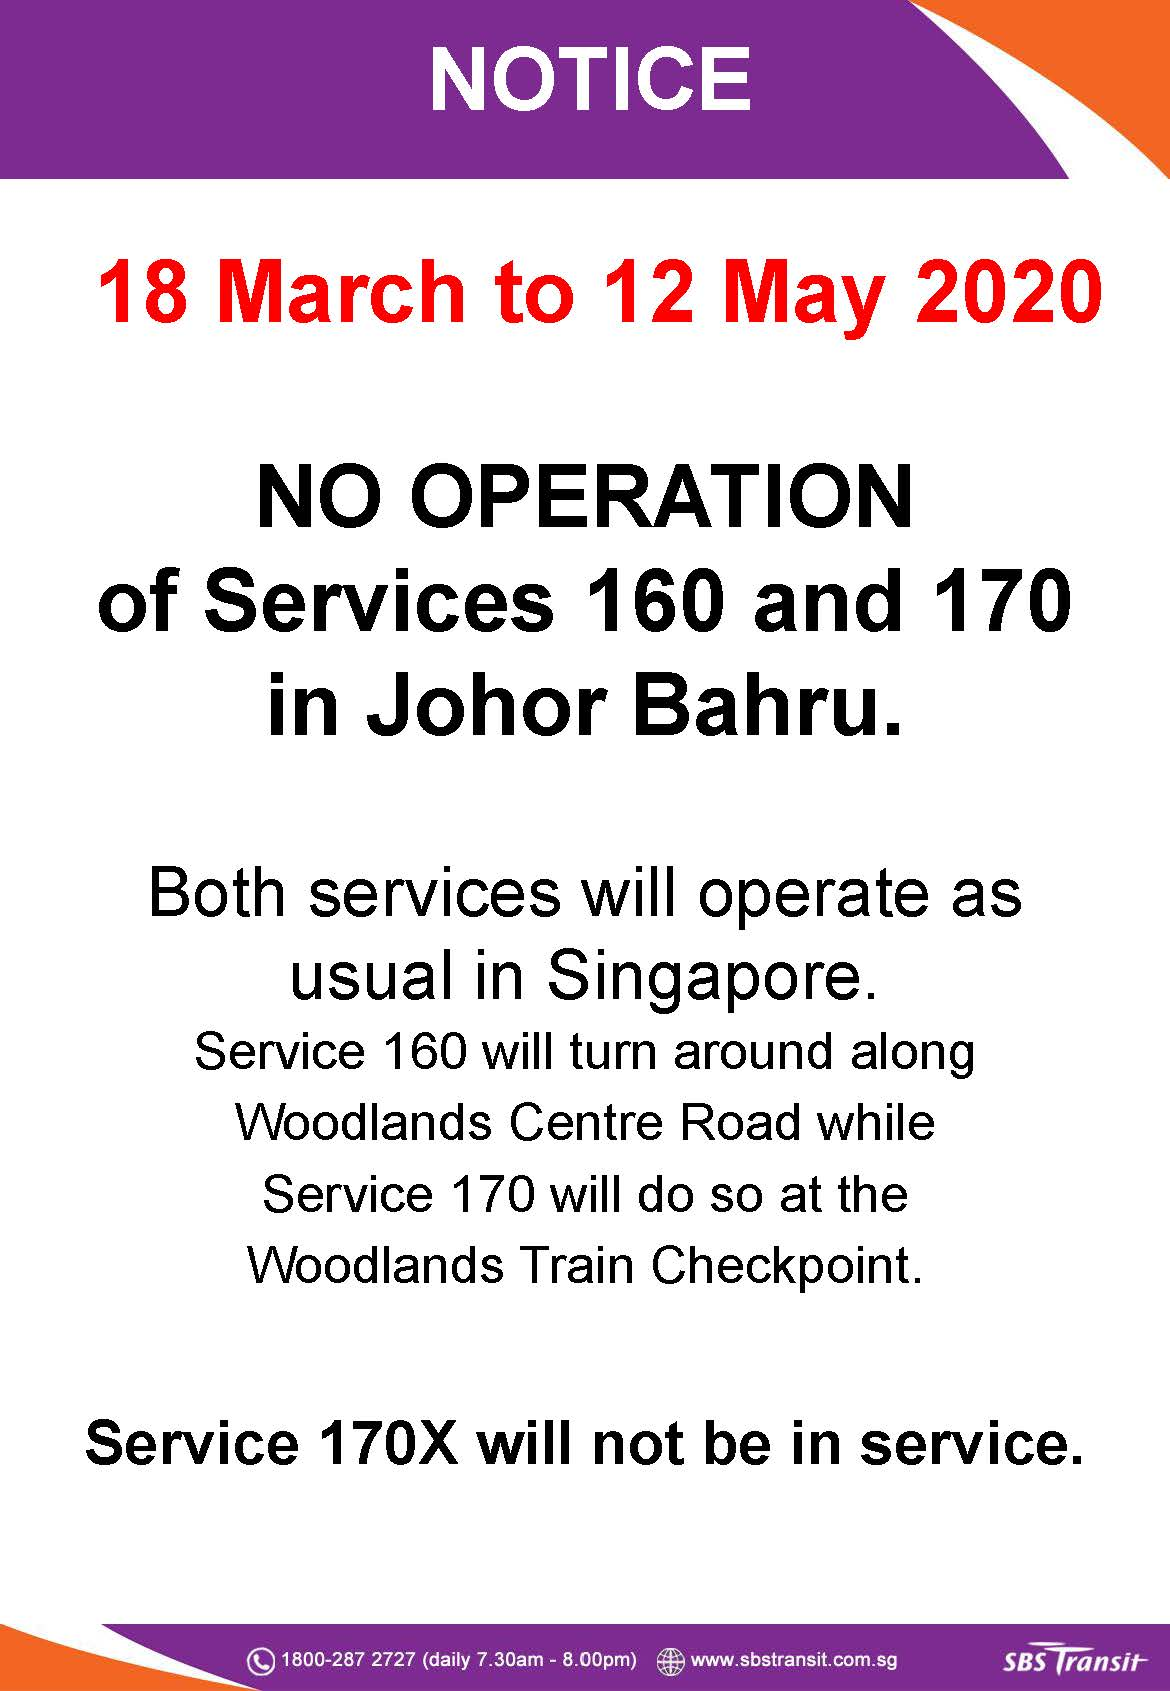 Official poster on operating status of SBS Transit bus services 160, 170 & 170X